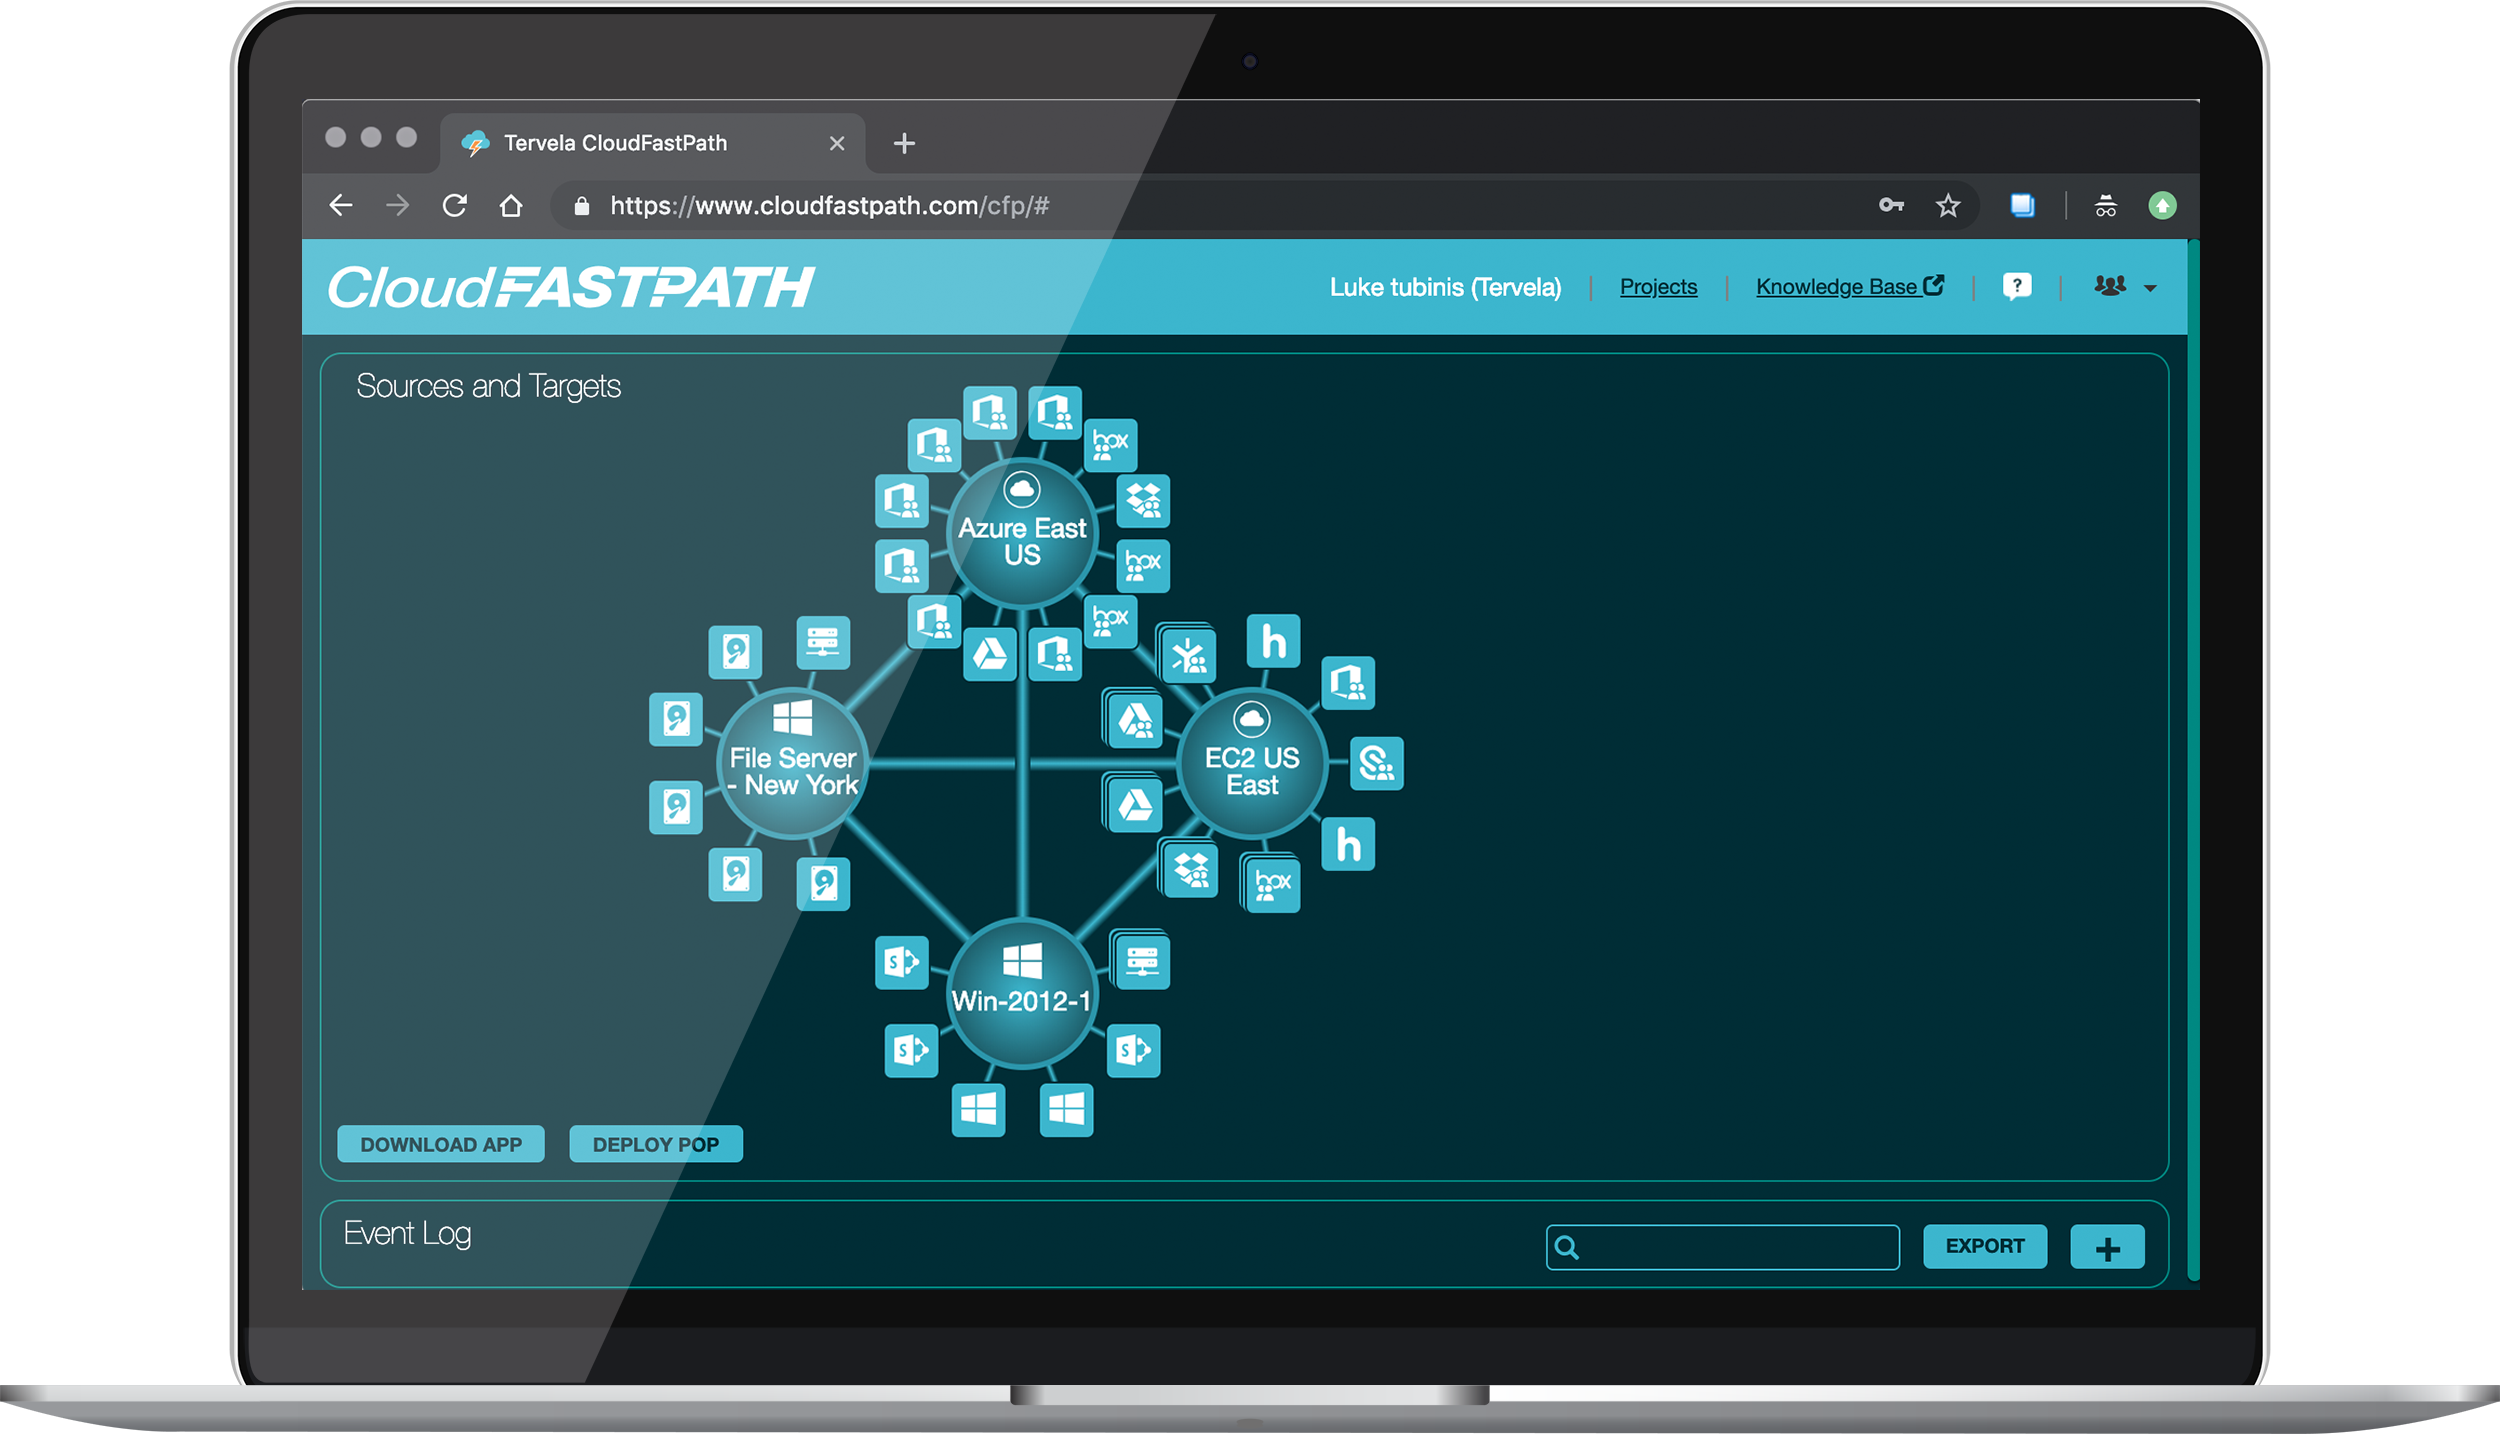 Cloud migrations tools shown in Cloud Fastpath Dashboard